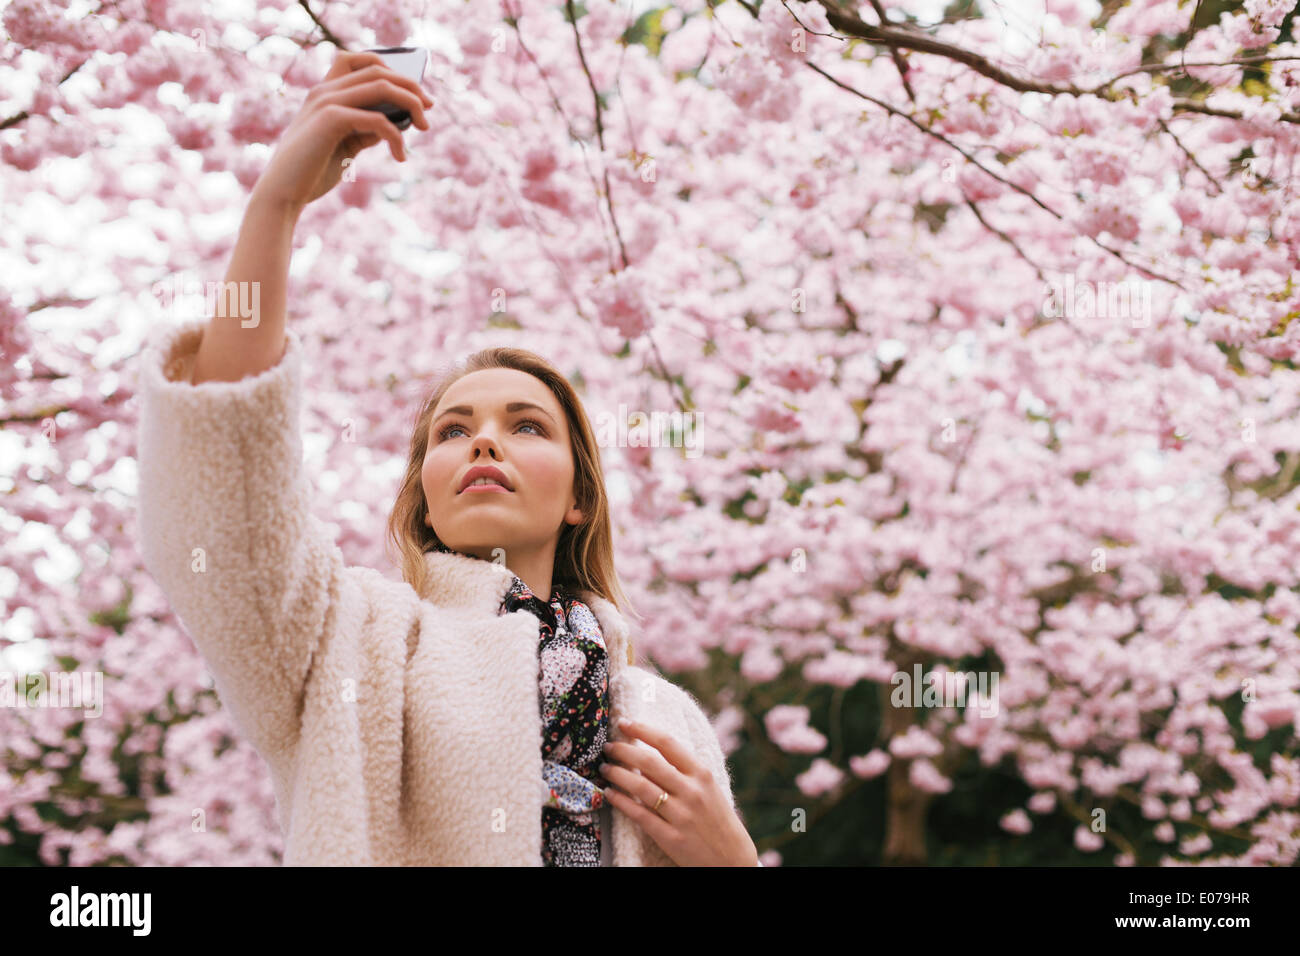 Beautiful young lady photographing nature with her mobile phone. Pretty young woman at spring blossom park taking photographs. - Stock Image